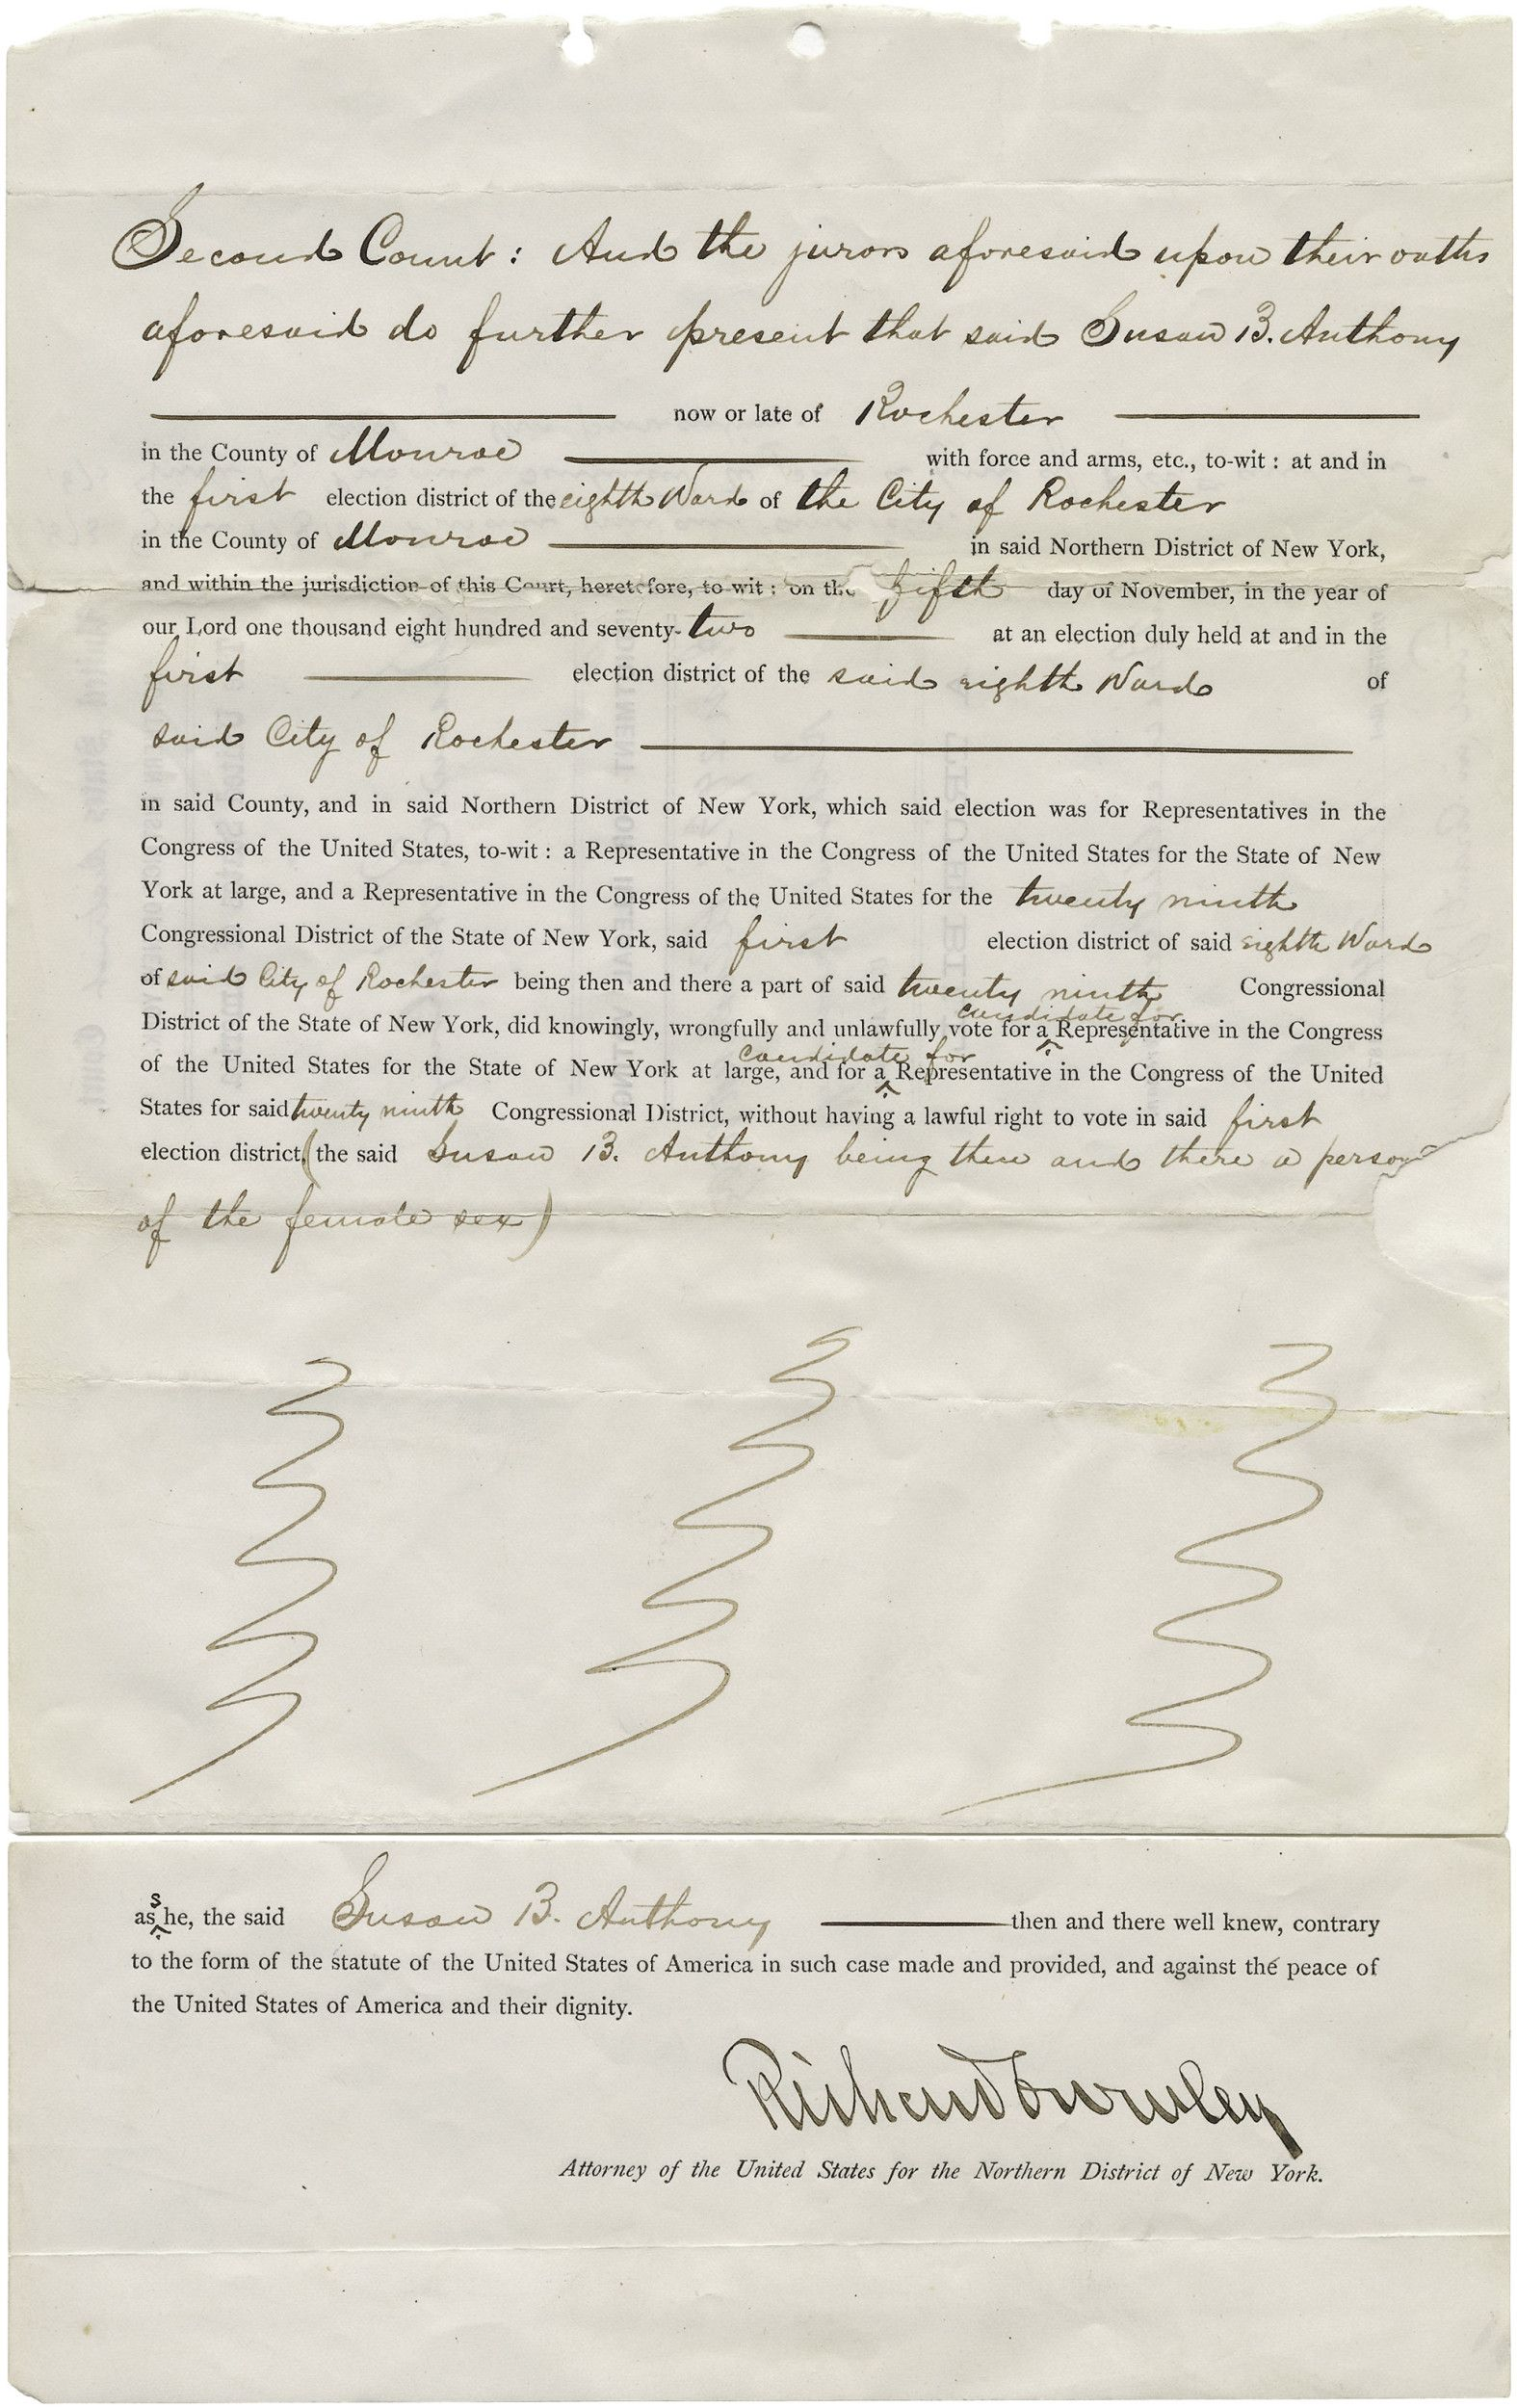 Indictment for Susan B. Anthony for Illegal Voting